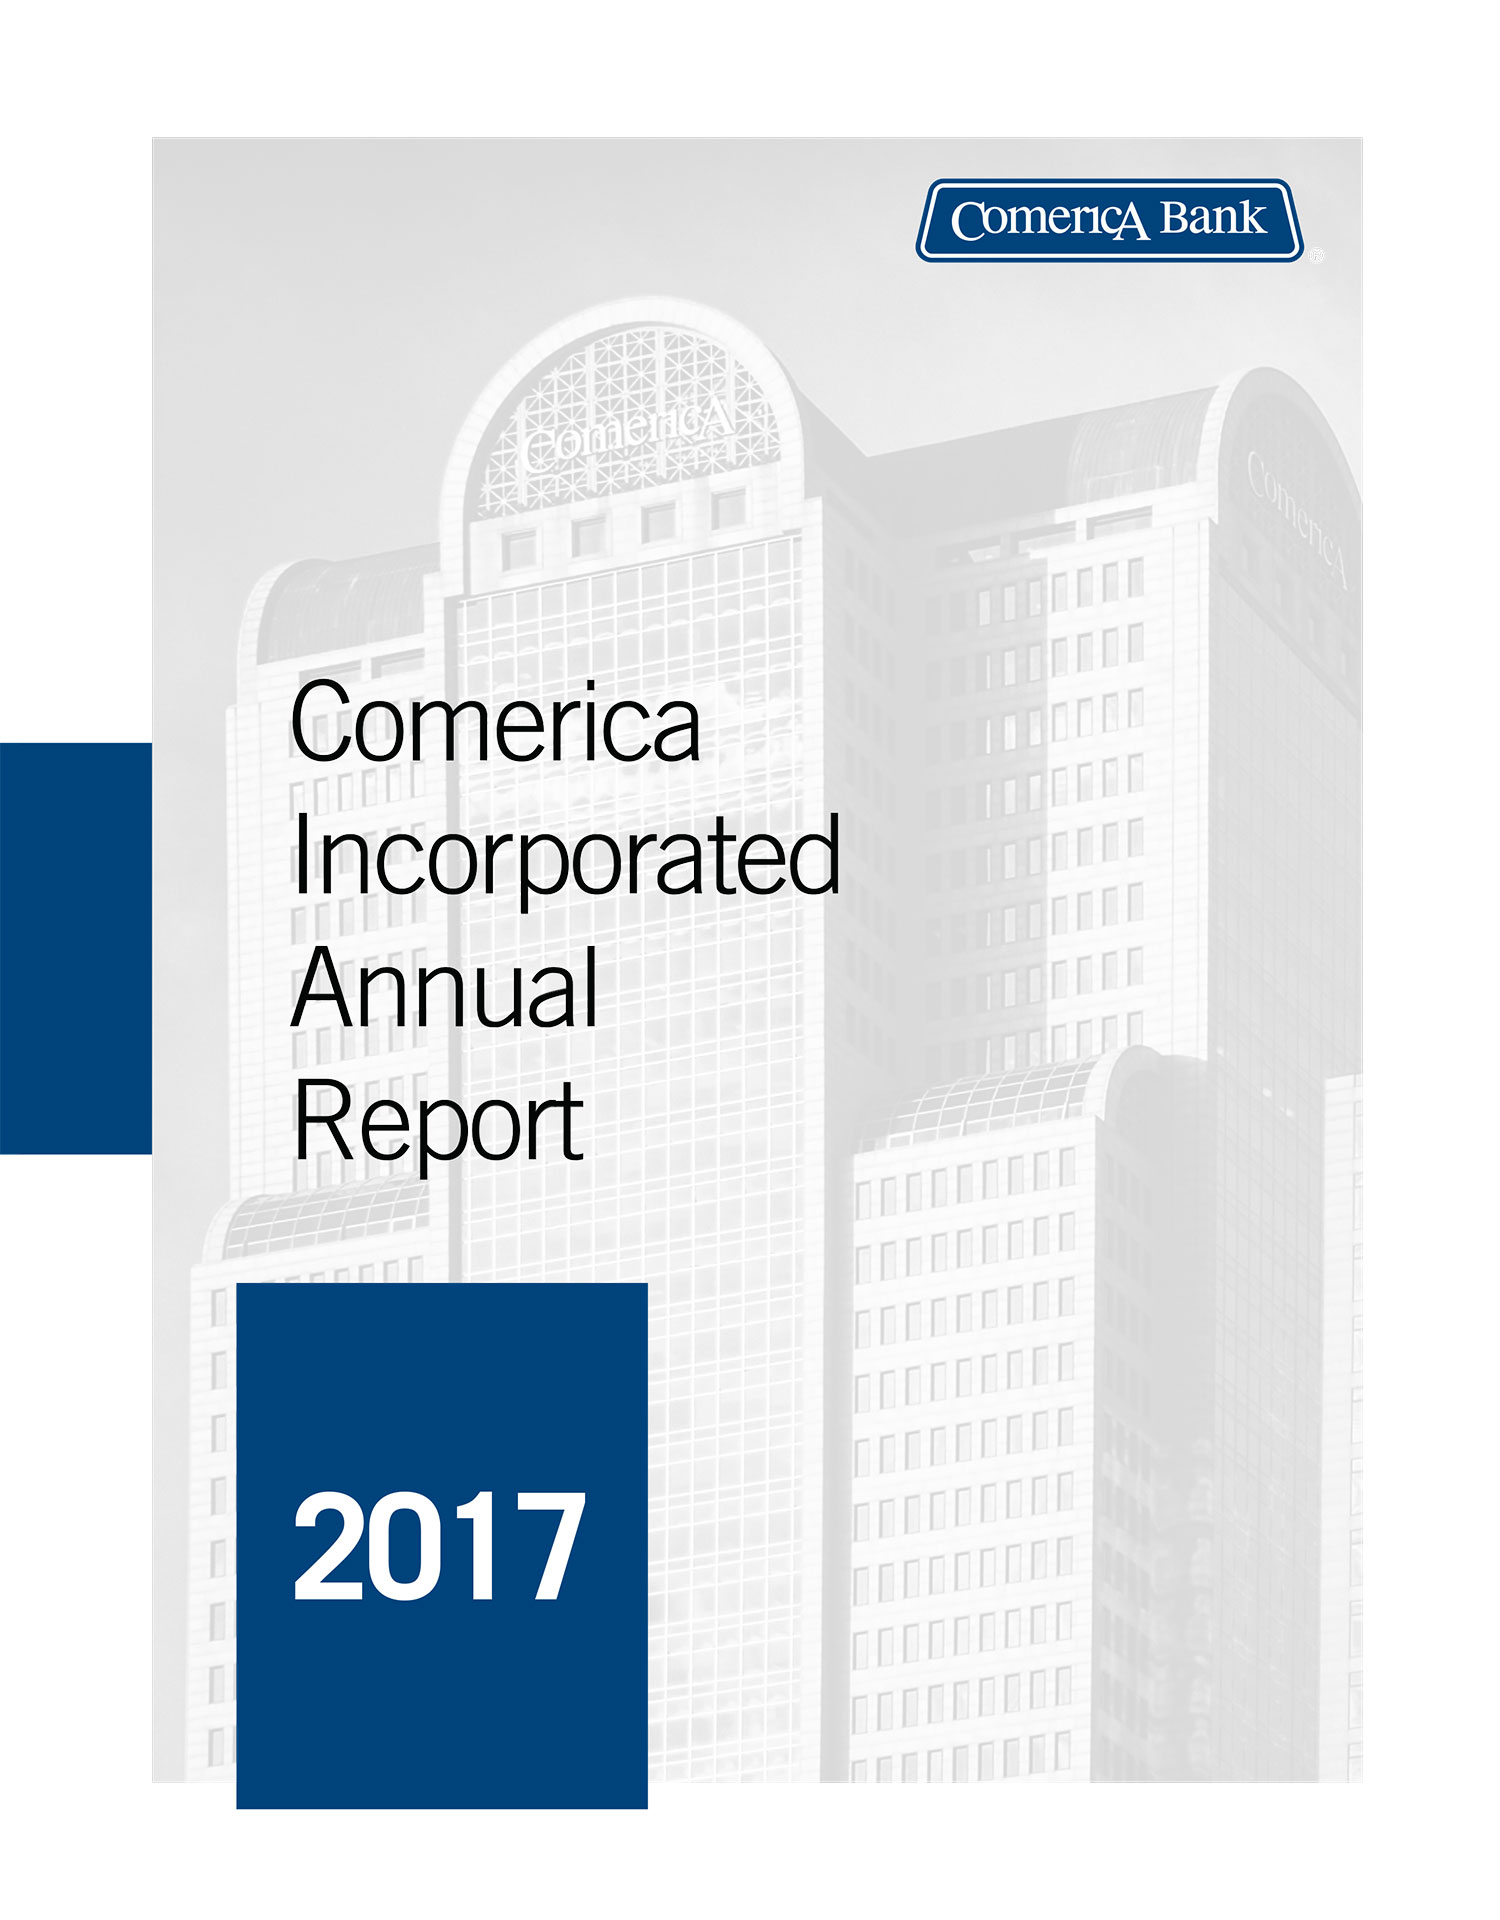 Comerica - Annual Report 2017